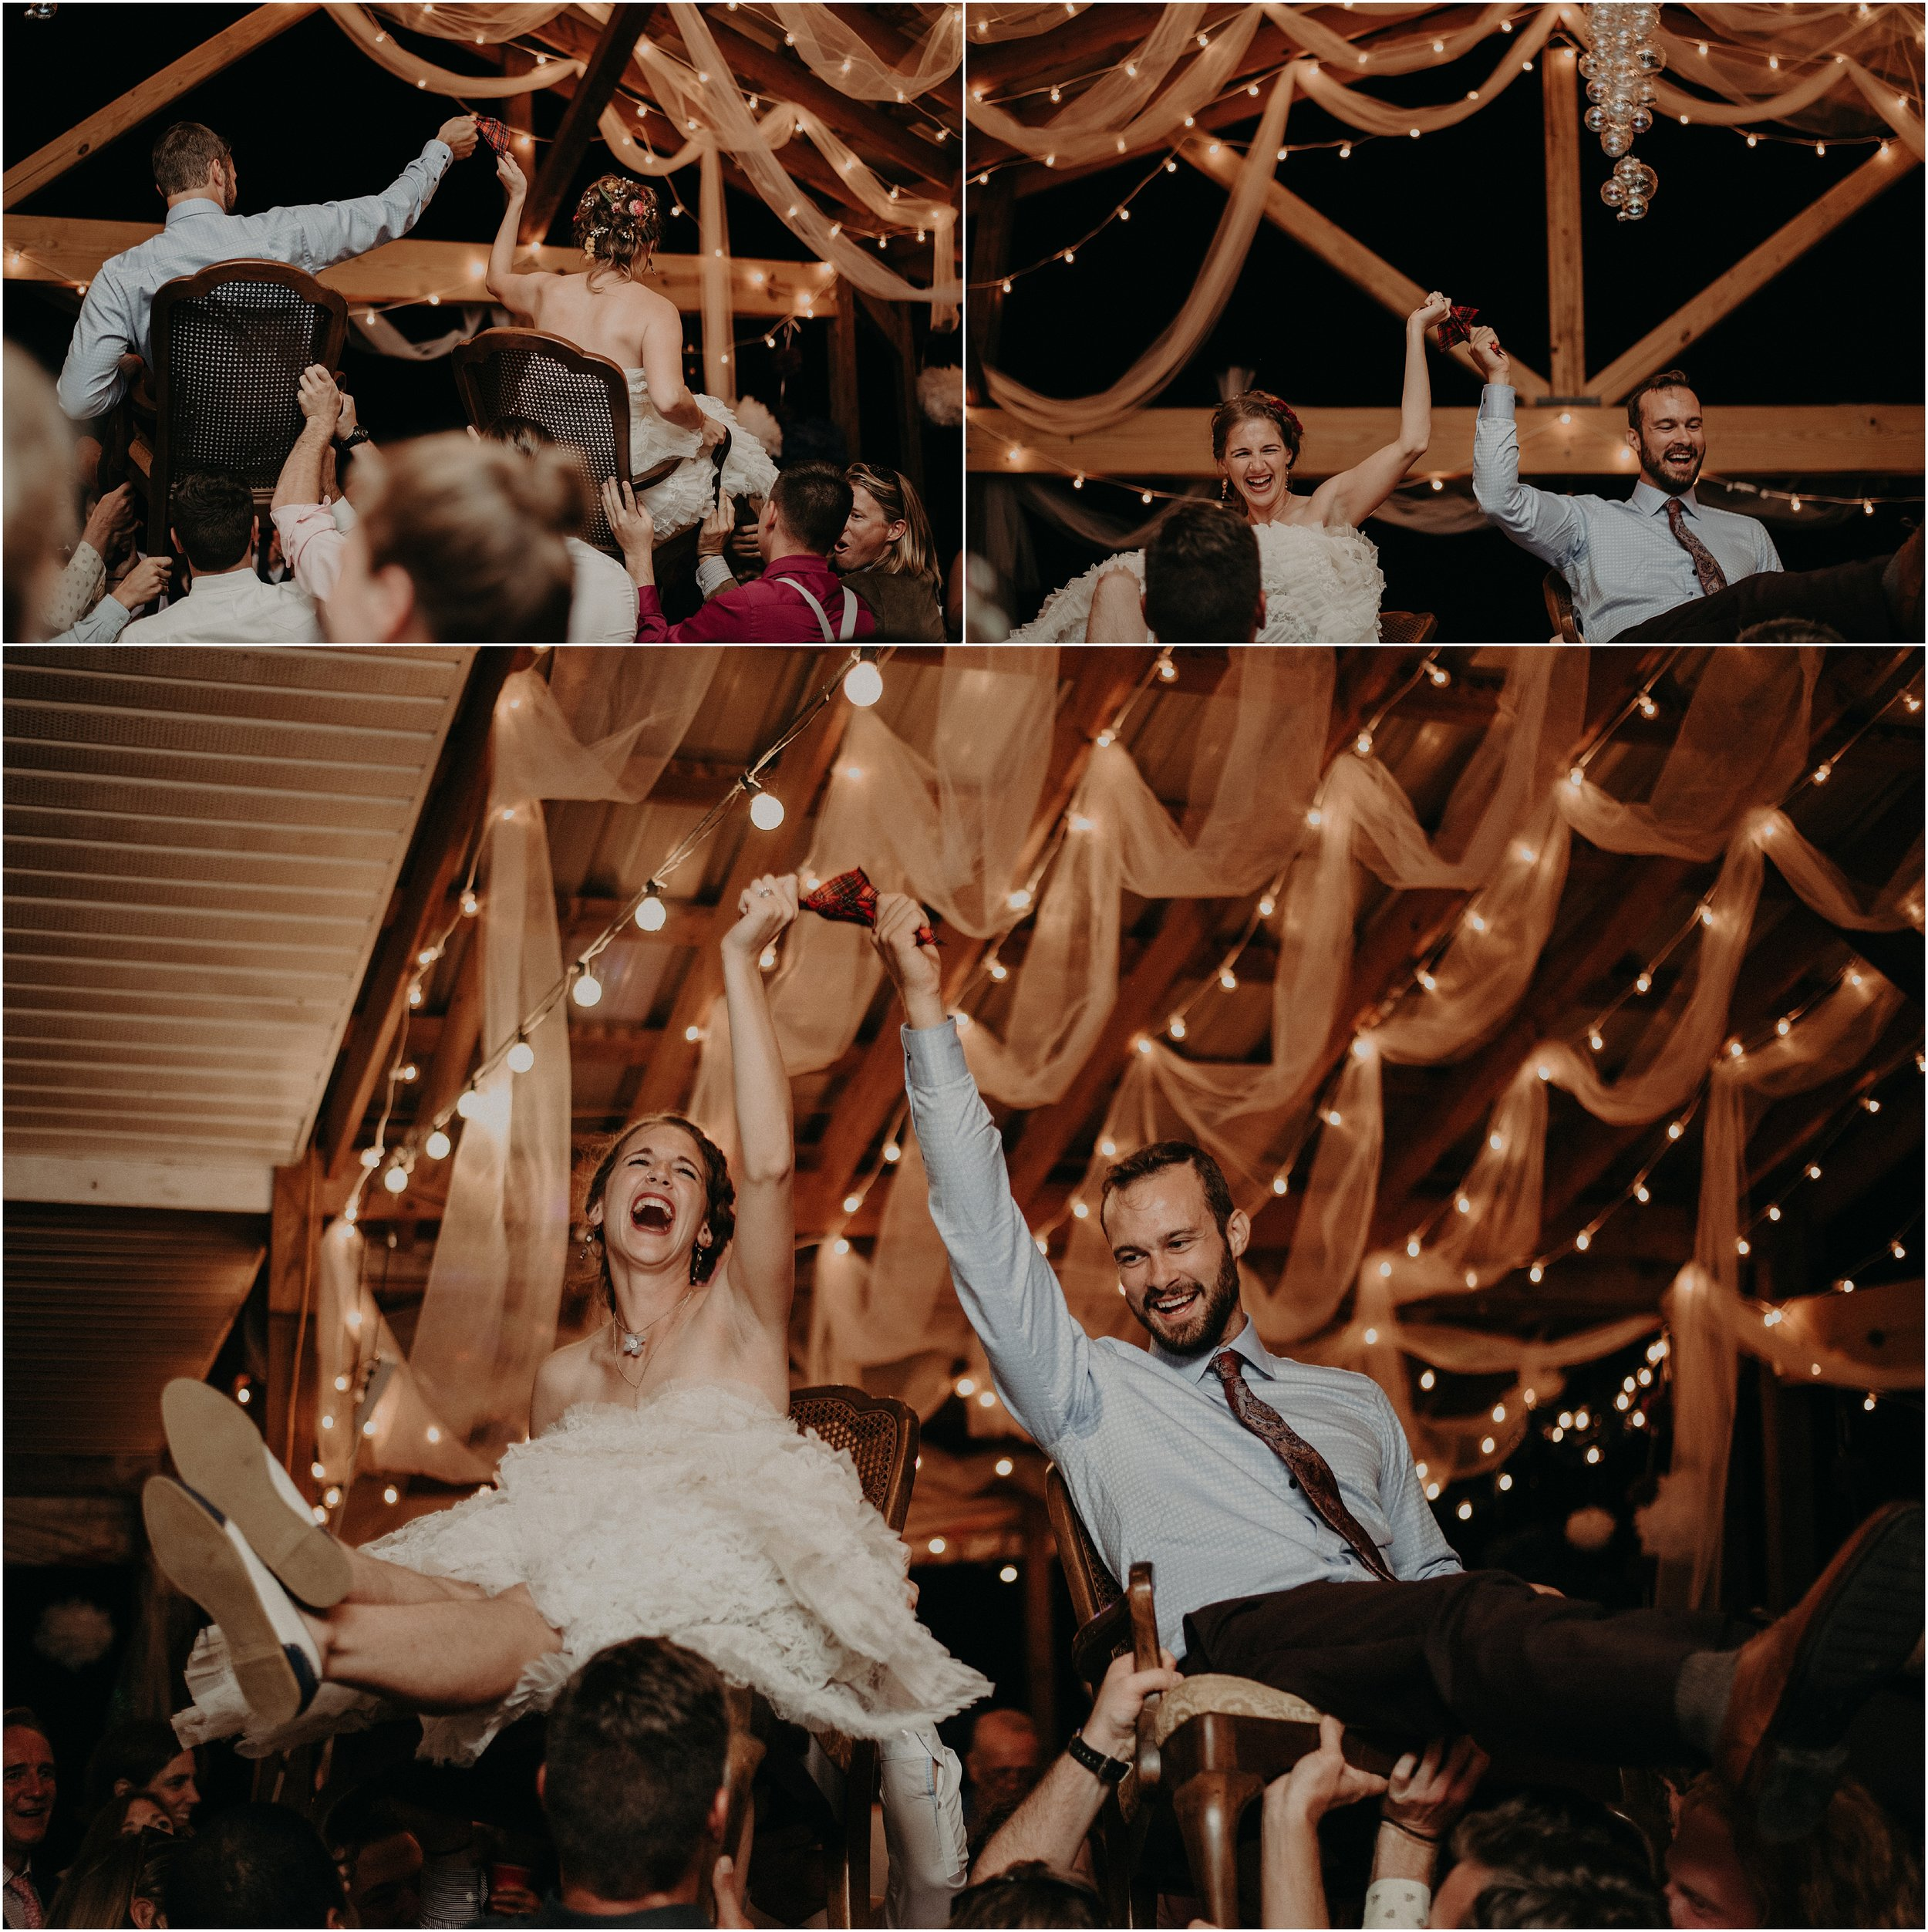 Bride and groom perform the traditional Jewish dance, The Hora